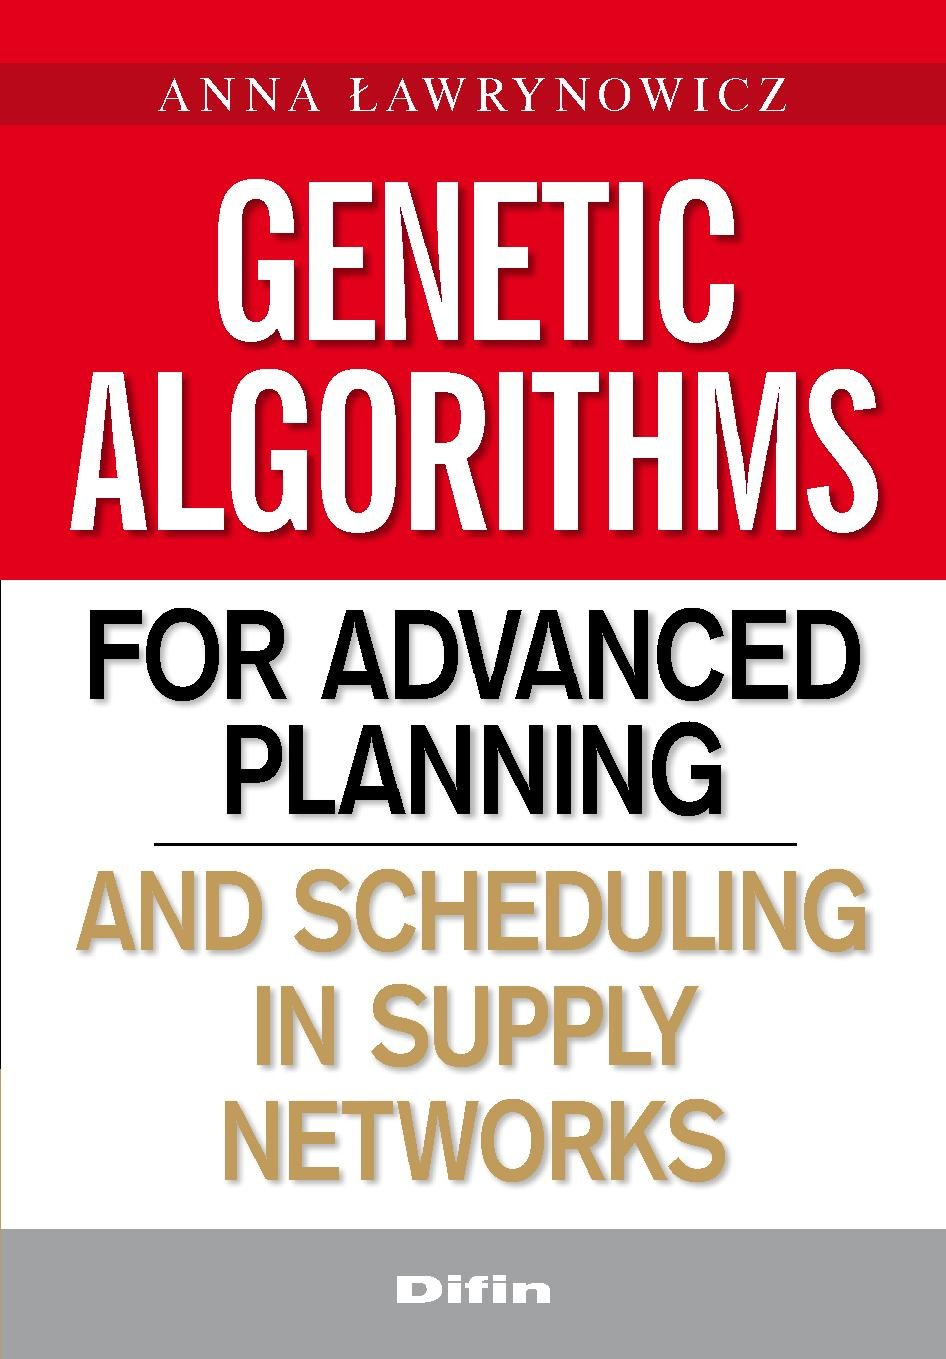 Genetic algorithms for advanced planning and scheduling in supply networks